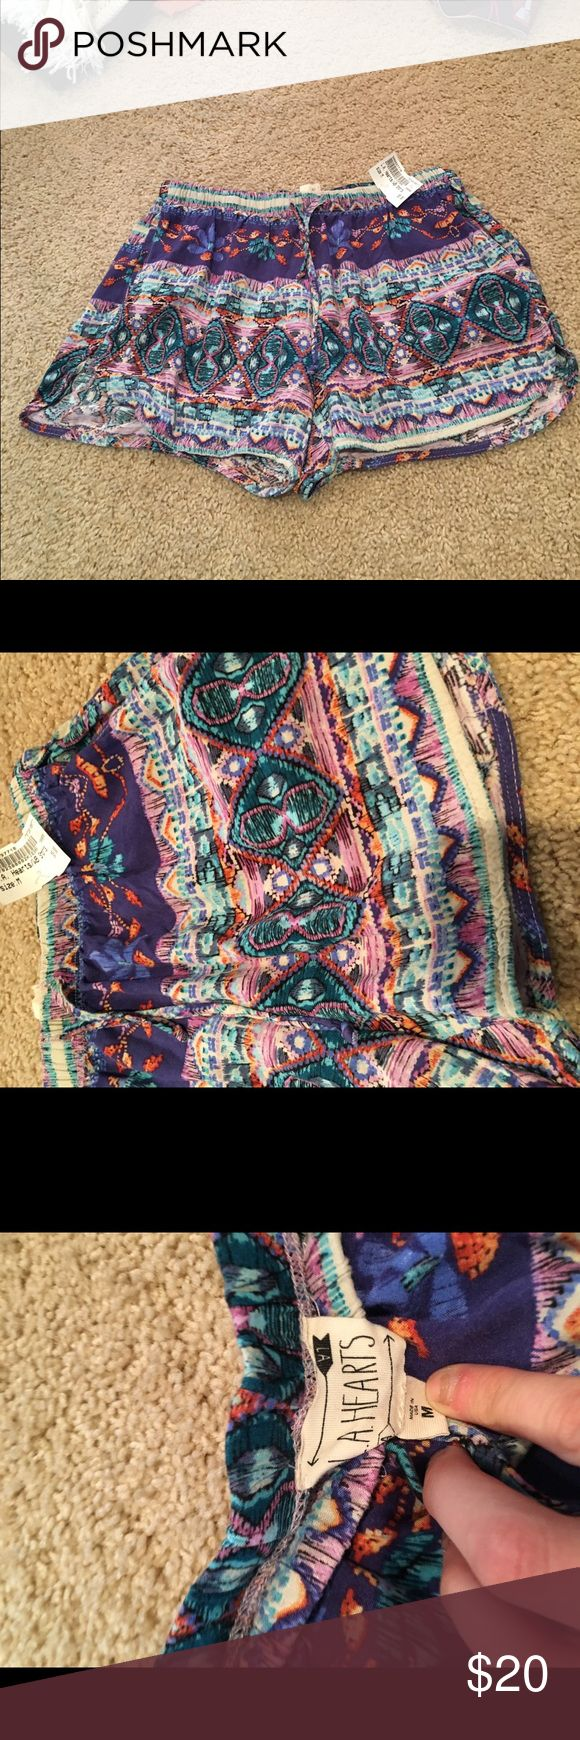 Purple and pink tribal shorts never worn Purple and pink tribal shorts never worn La Hearts Shorts